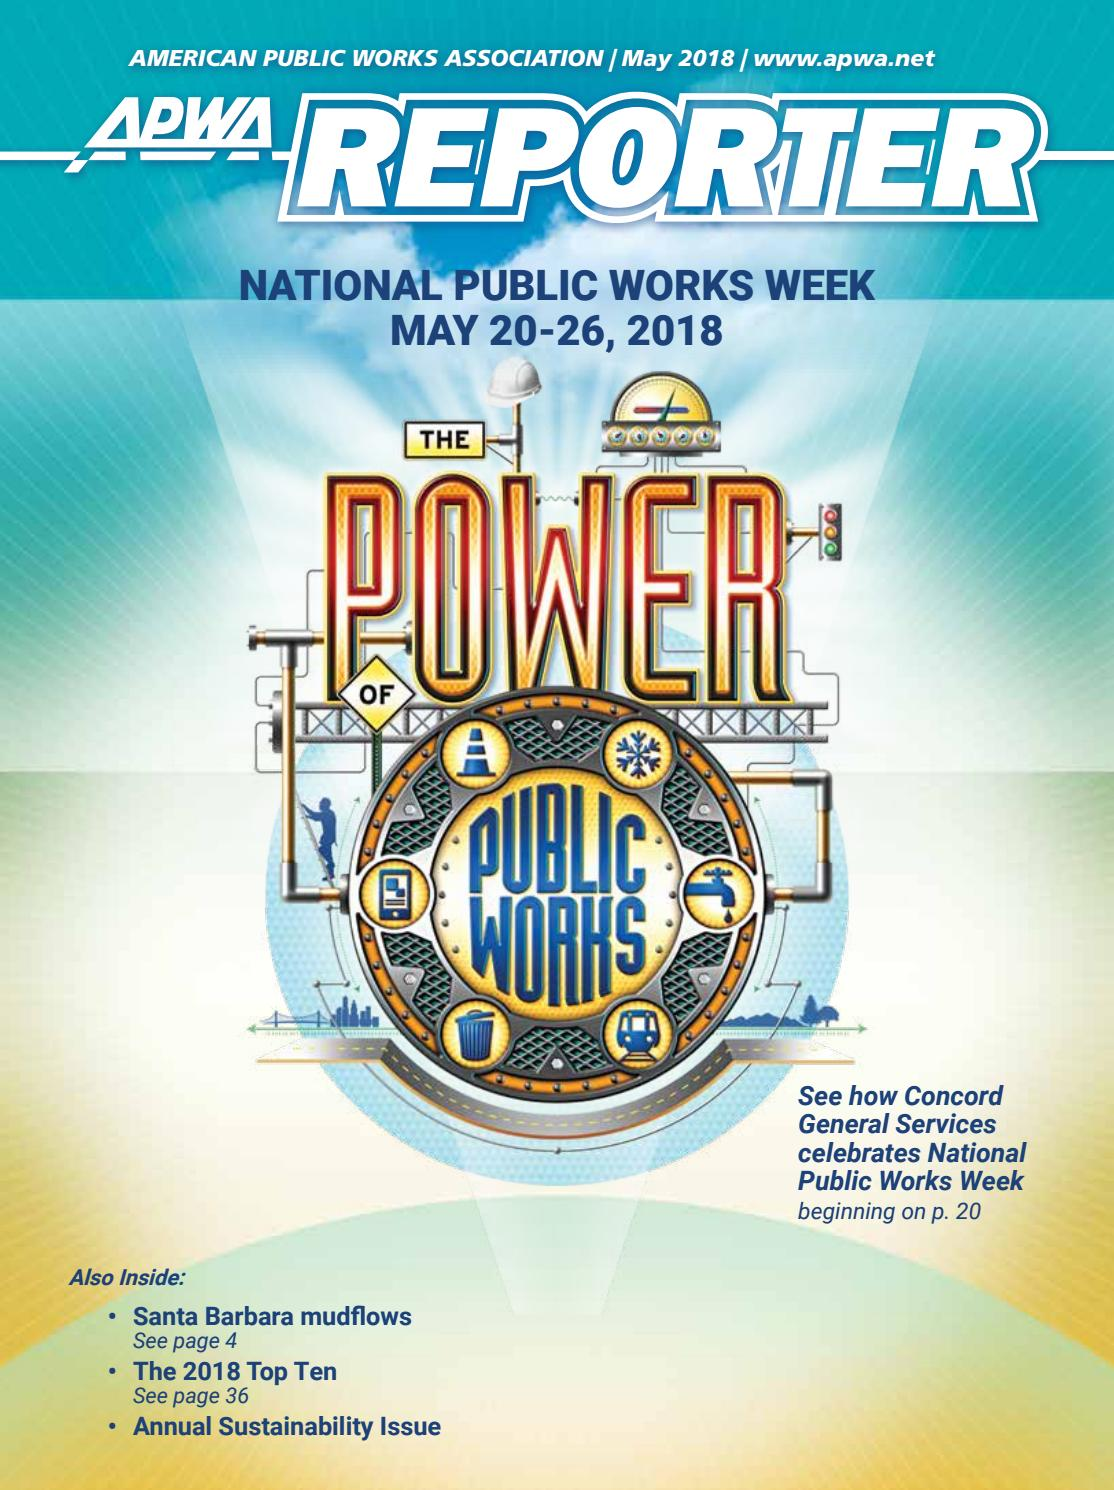 APWA Reporter, May 2018 issue by American Public Works